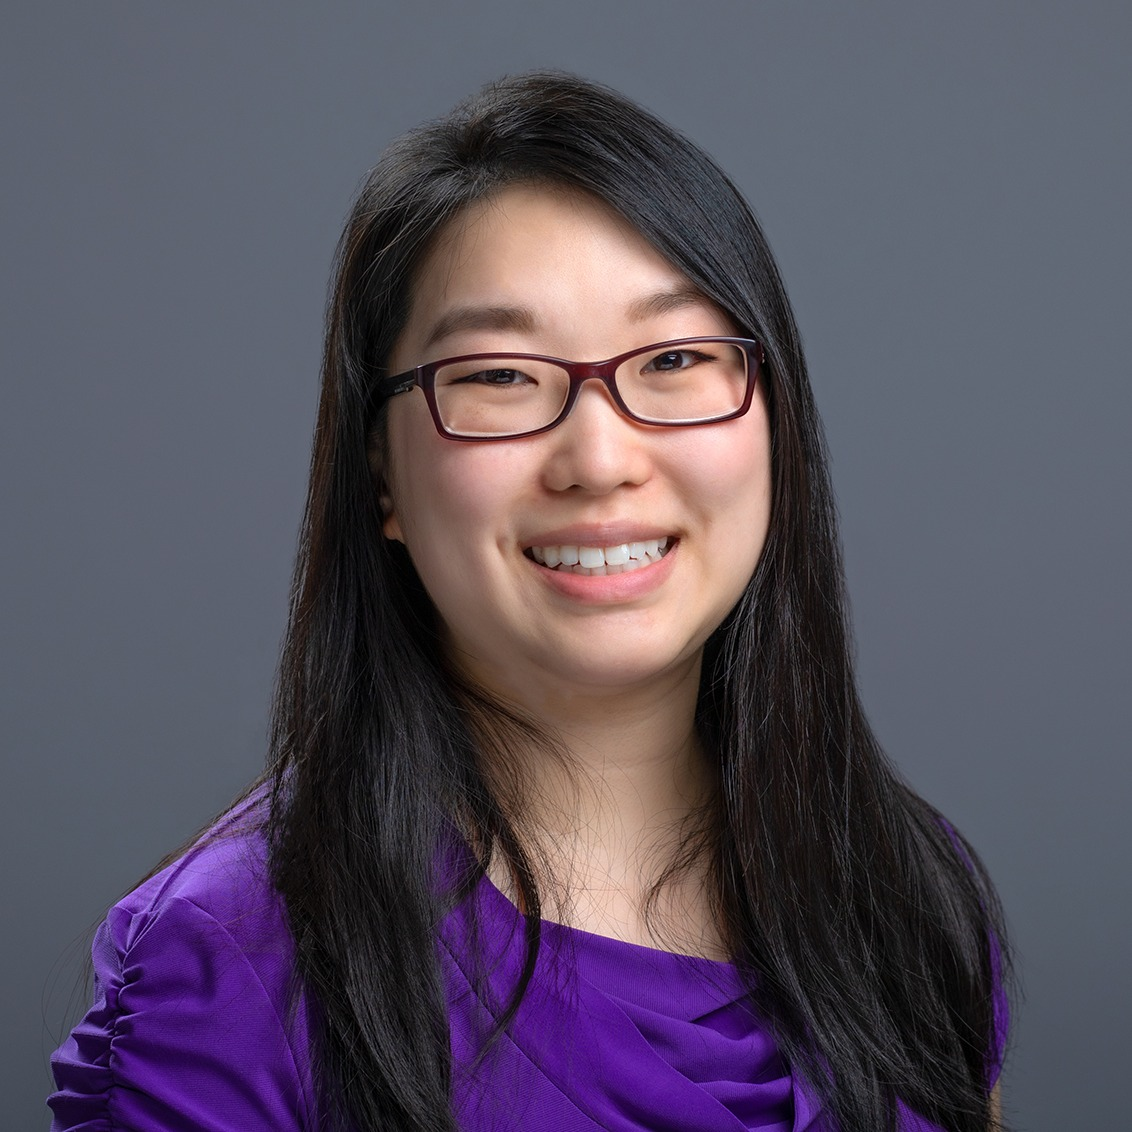 Headshot photo of Sharon Jang, DDS